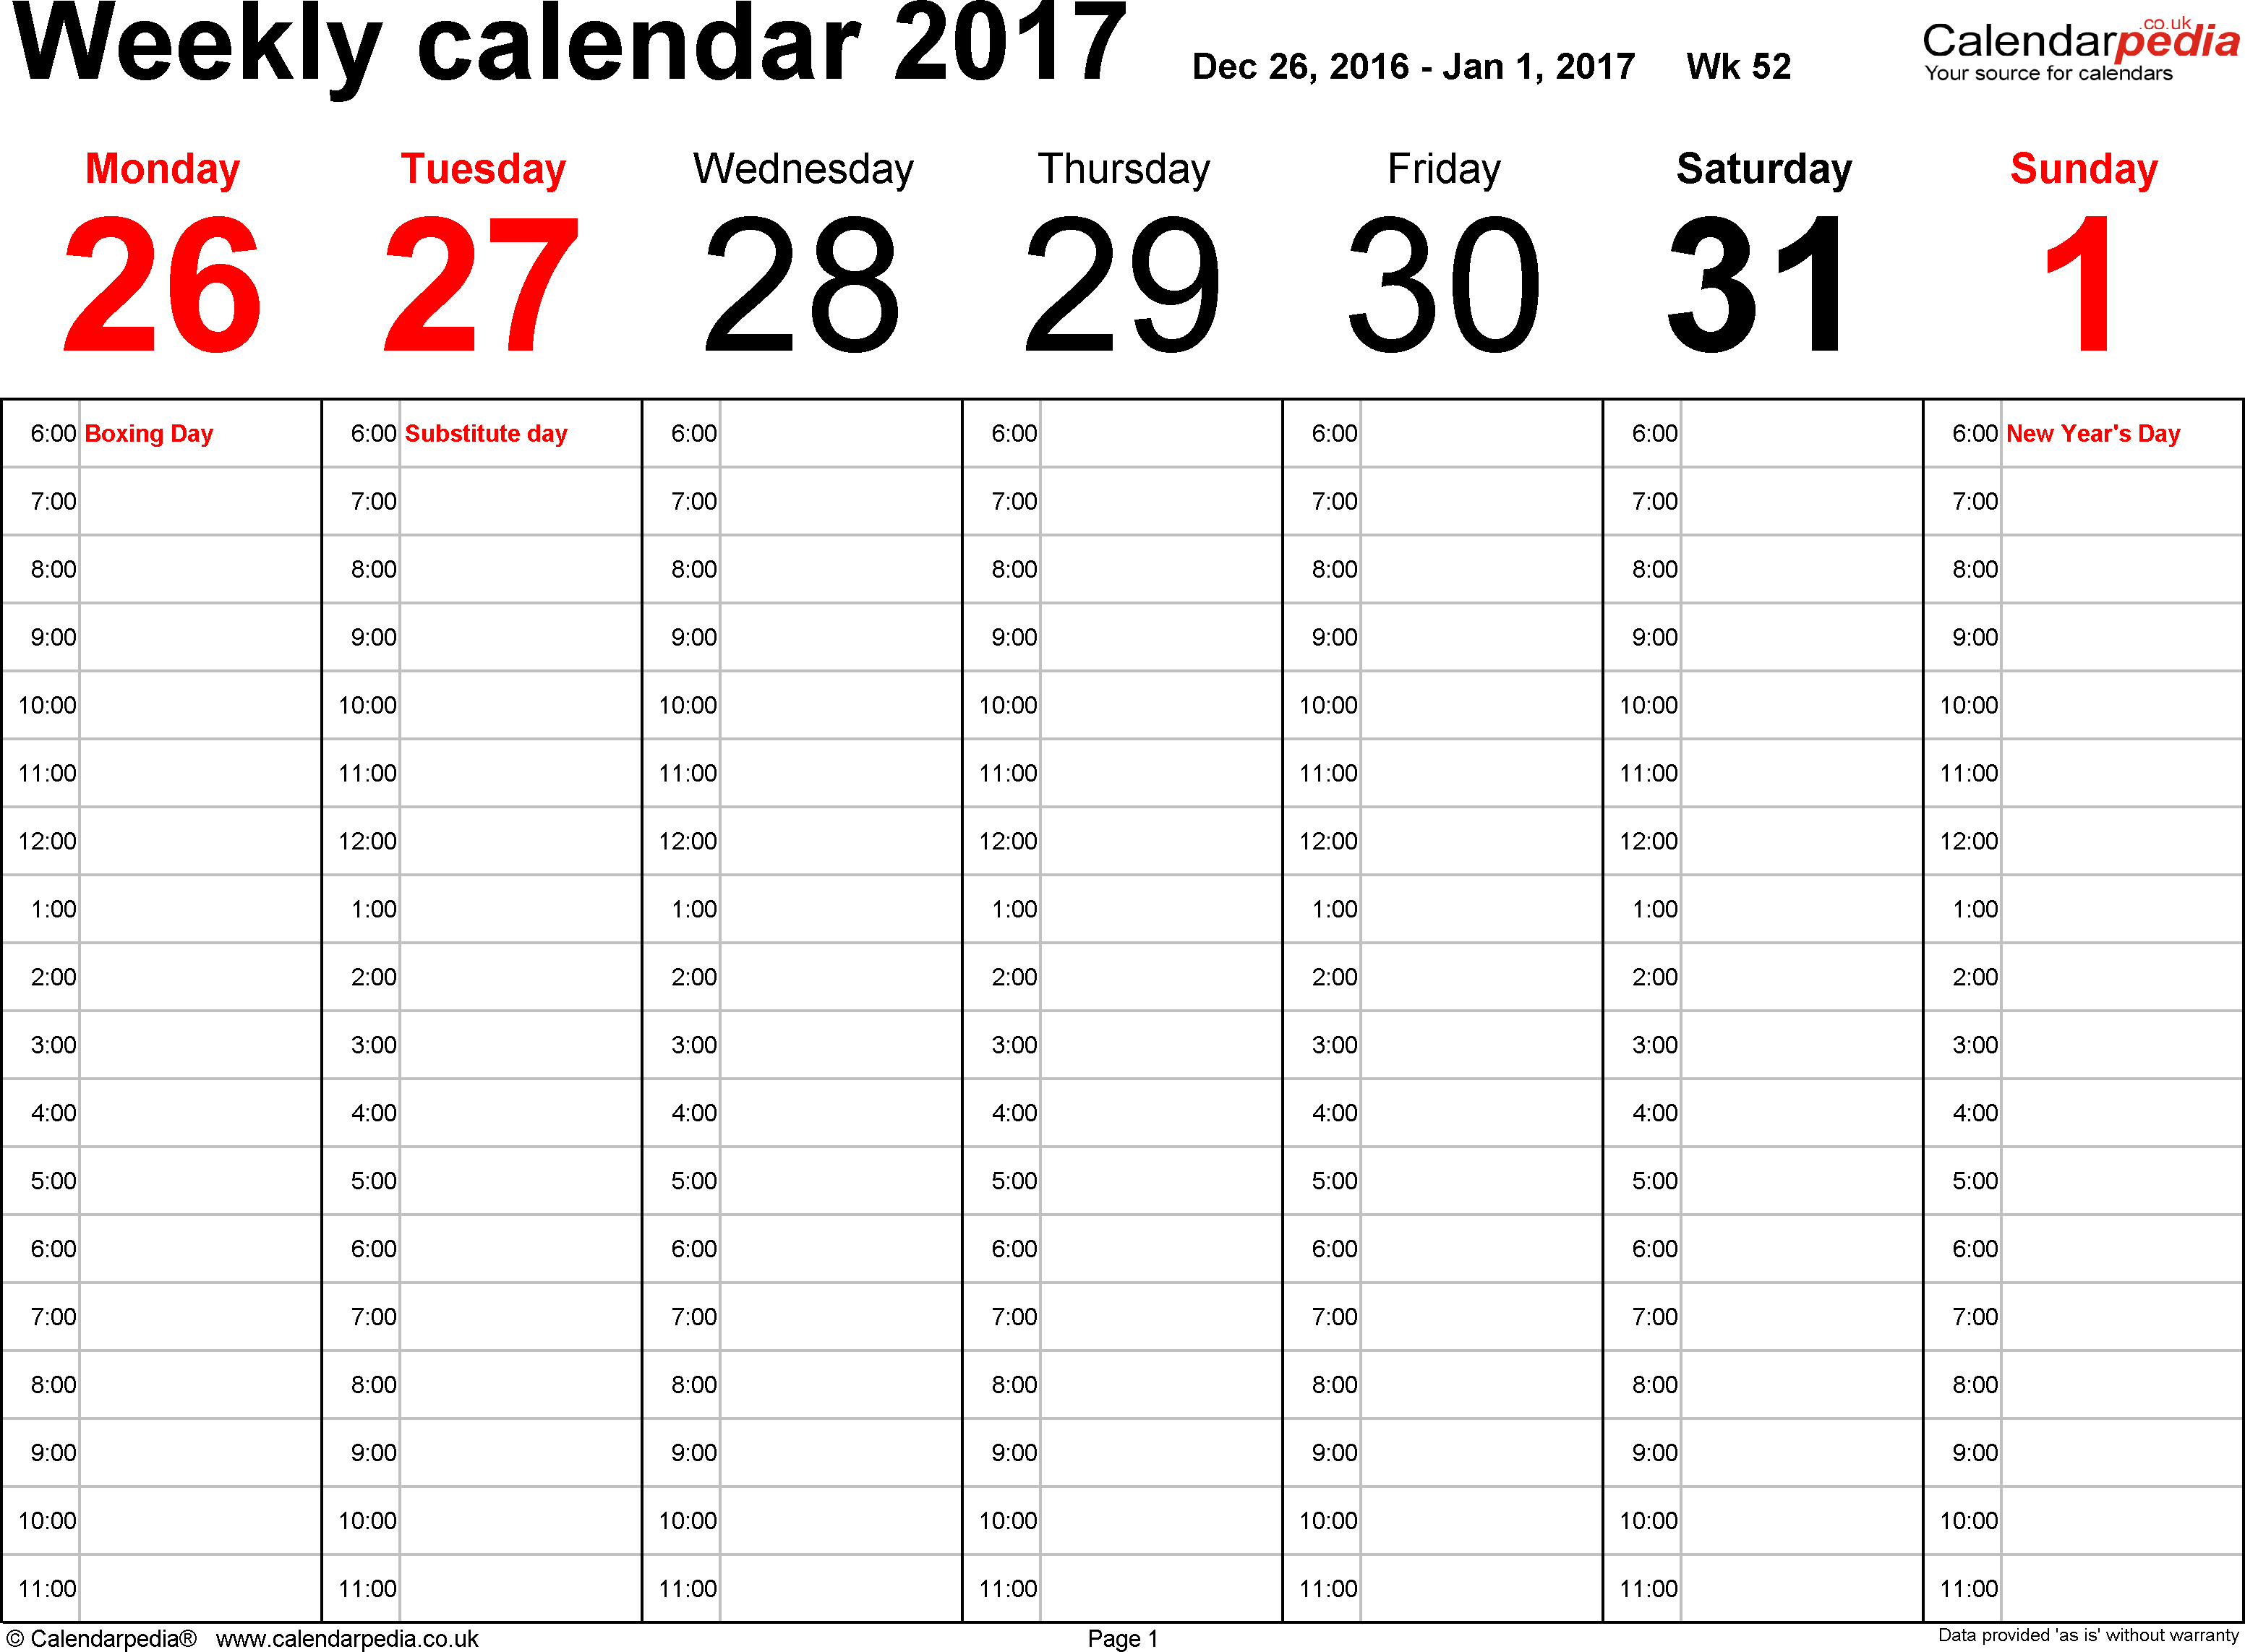 Download Word template 1: Weekly calendar 2017, landscape orientation, 53 pages (1 calendar week on 1 page), time management layout (showing 18 hours per day from 6am to midnight in 1 hour steps)